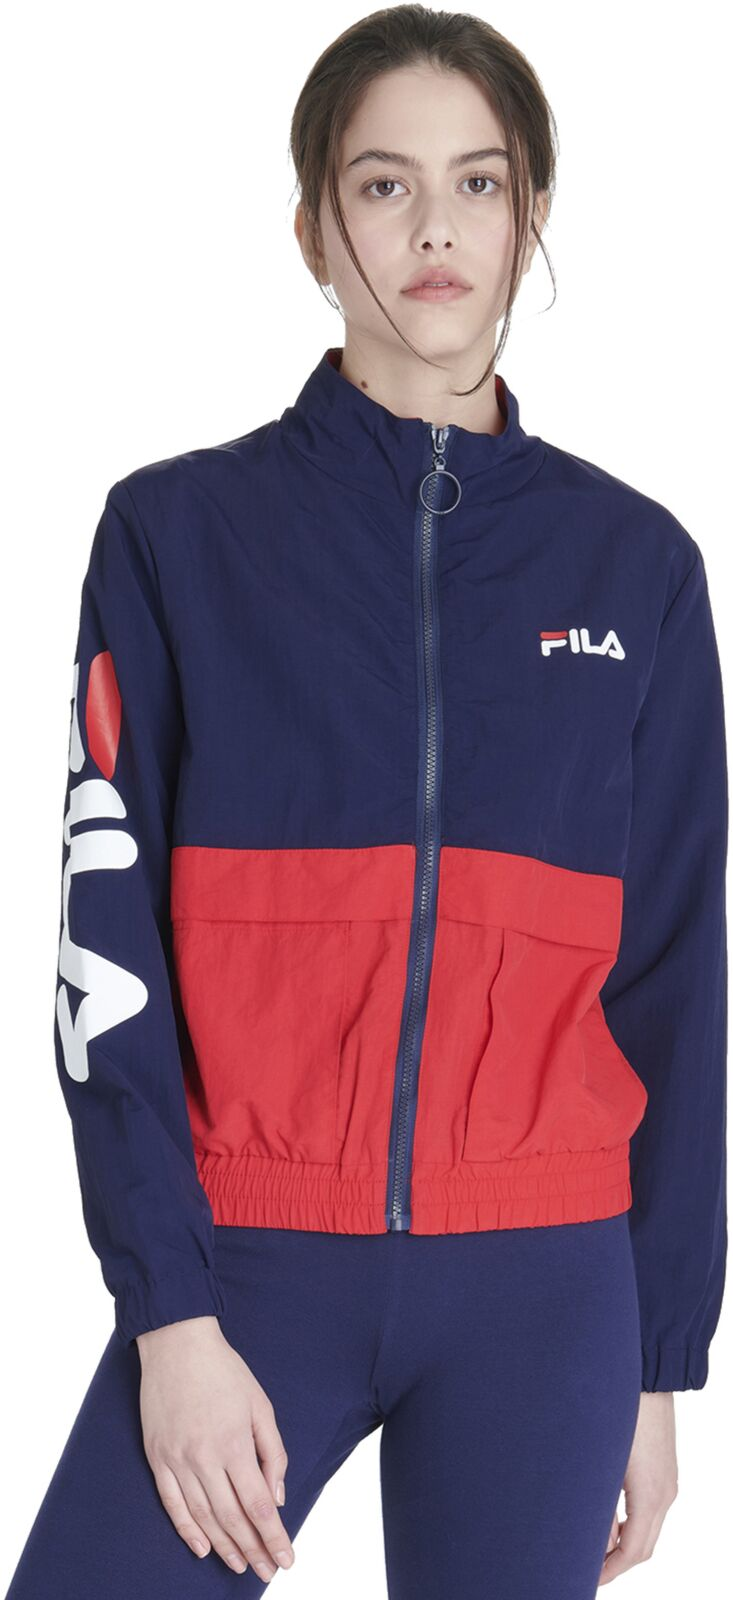 Fila Women's Miguela Track Top Blue